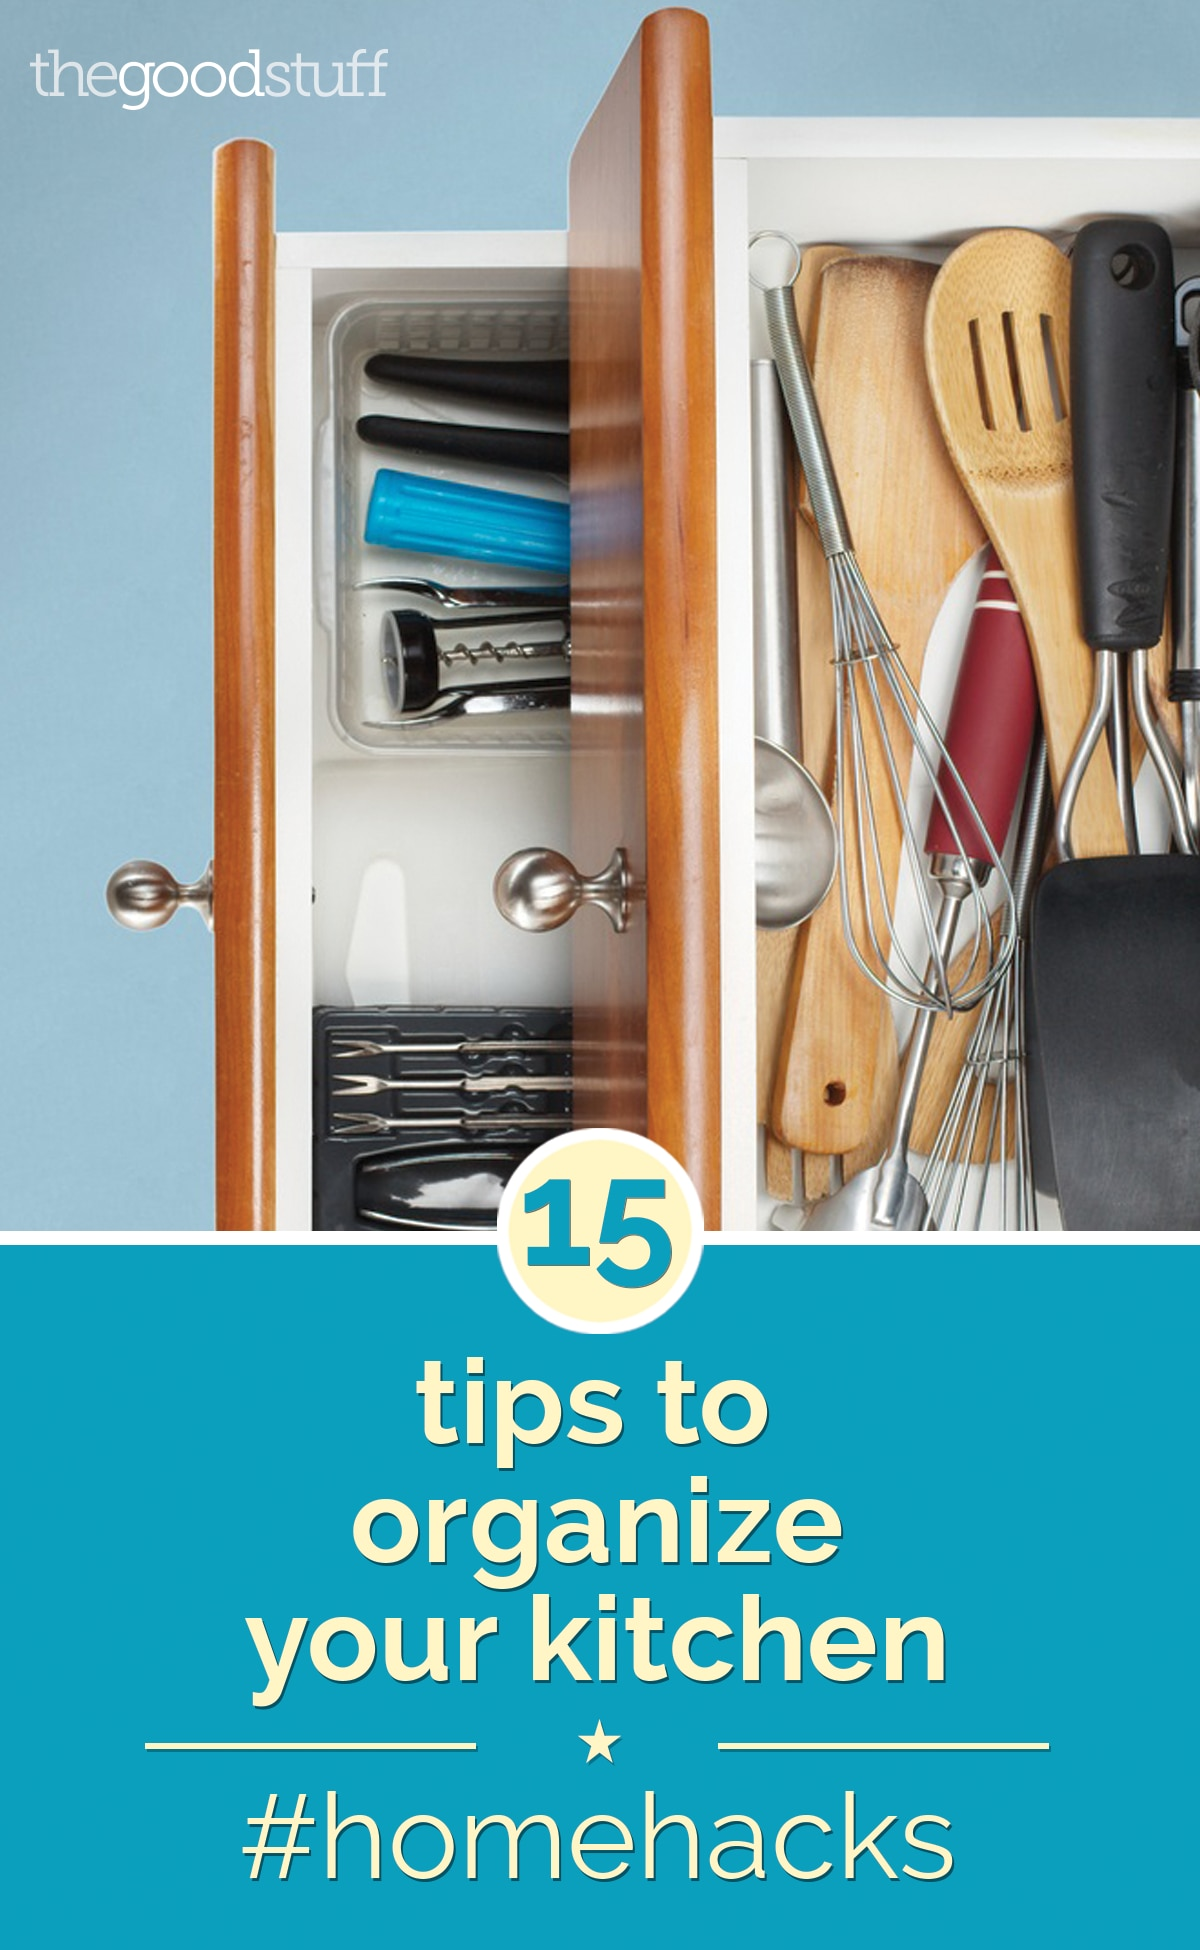 Home Hacks: 15 Tips to Organize Your Kitchen - thegoodstuff